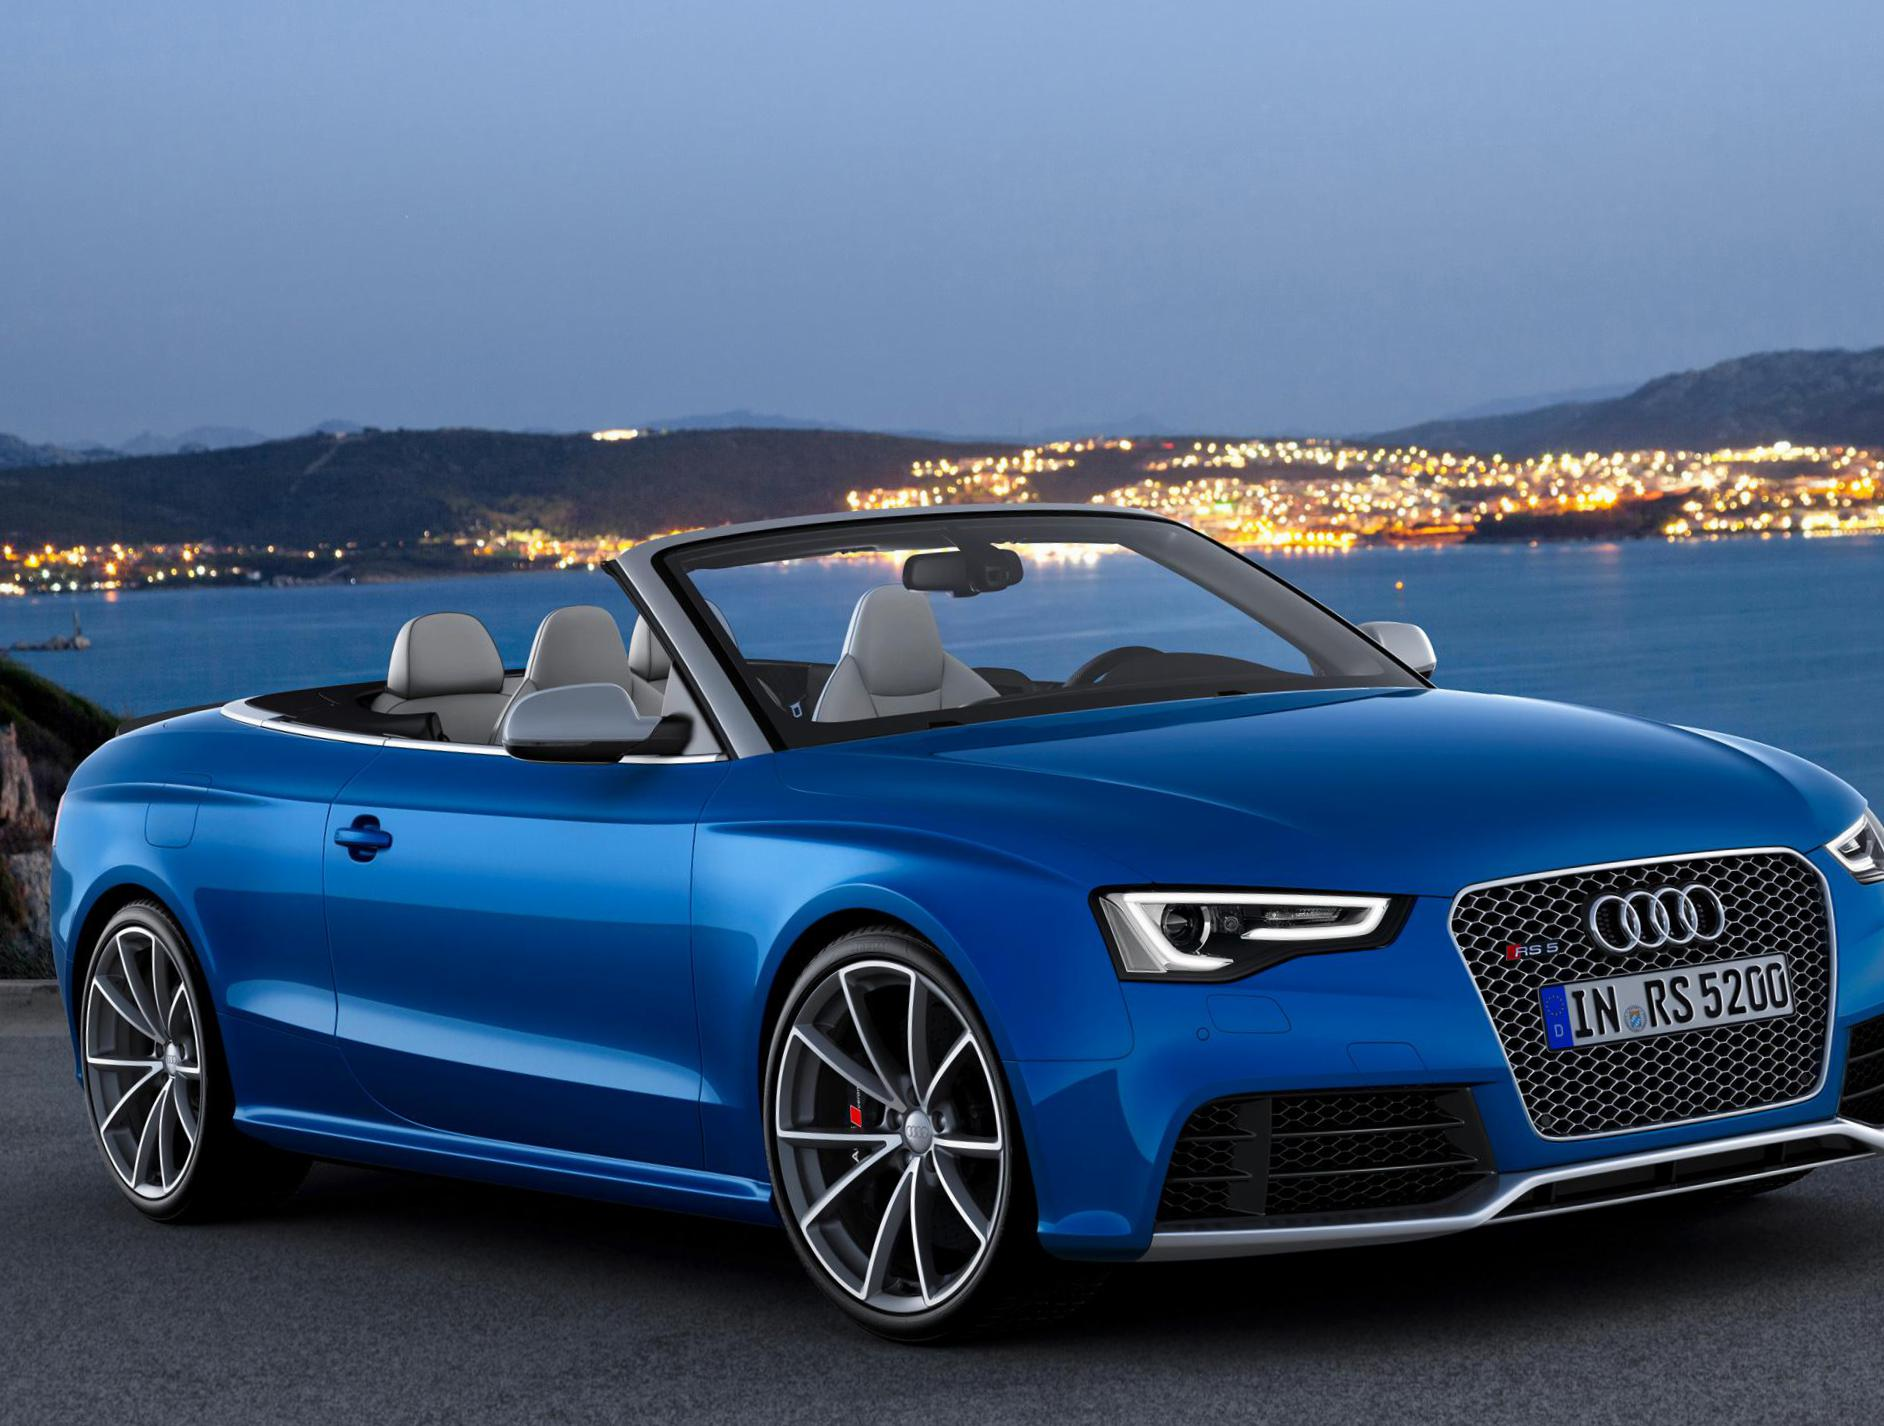 Audi Rs5 Cabriolet Photos And Specs Photo Rs5 Cabriolet Audi Tuning And 25 Perfect Photos Of Audi Rs5 Cabriolet